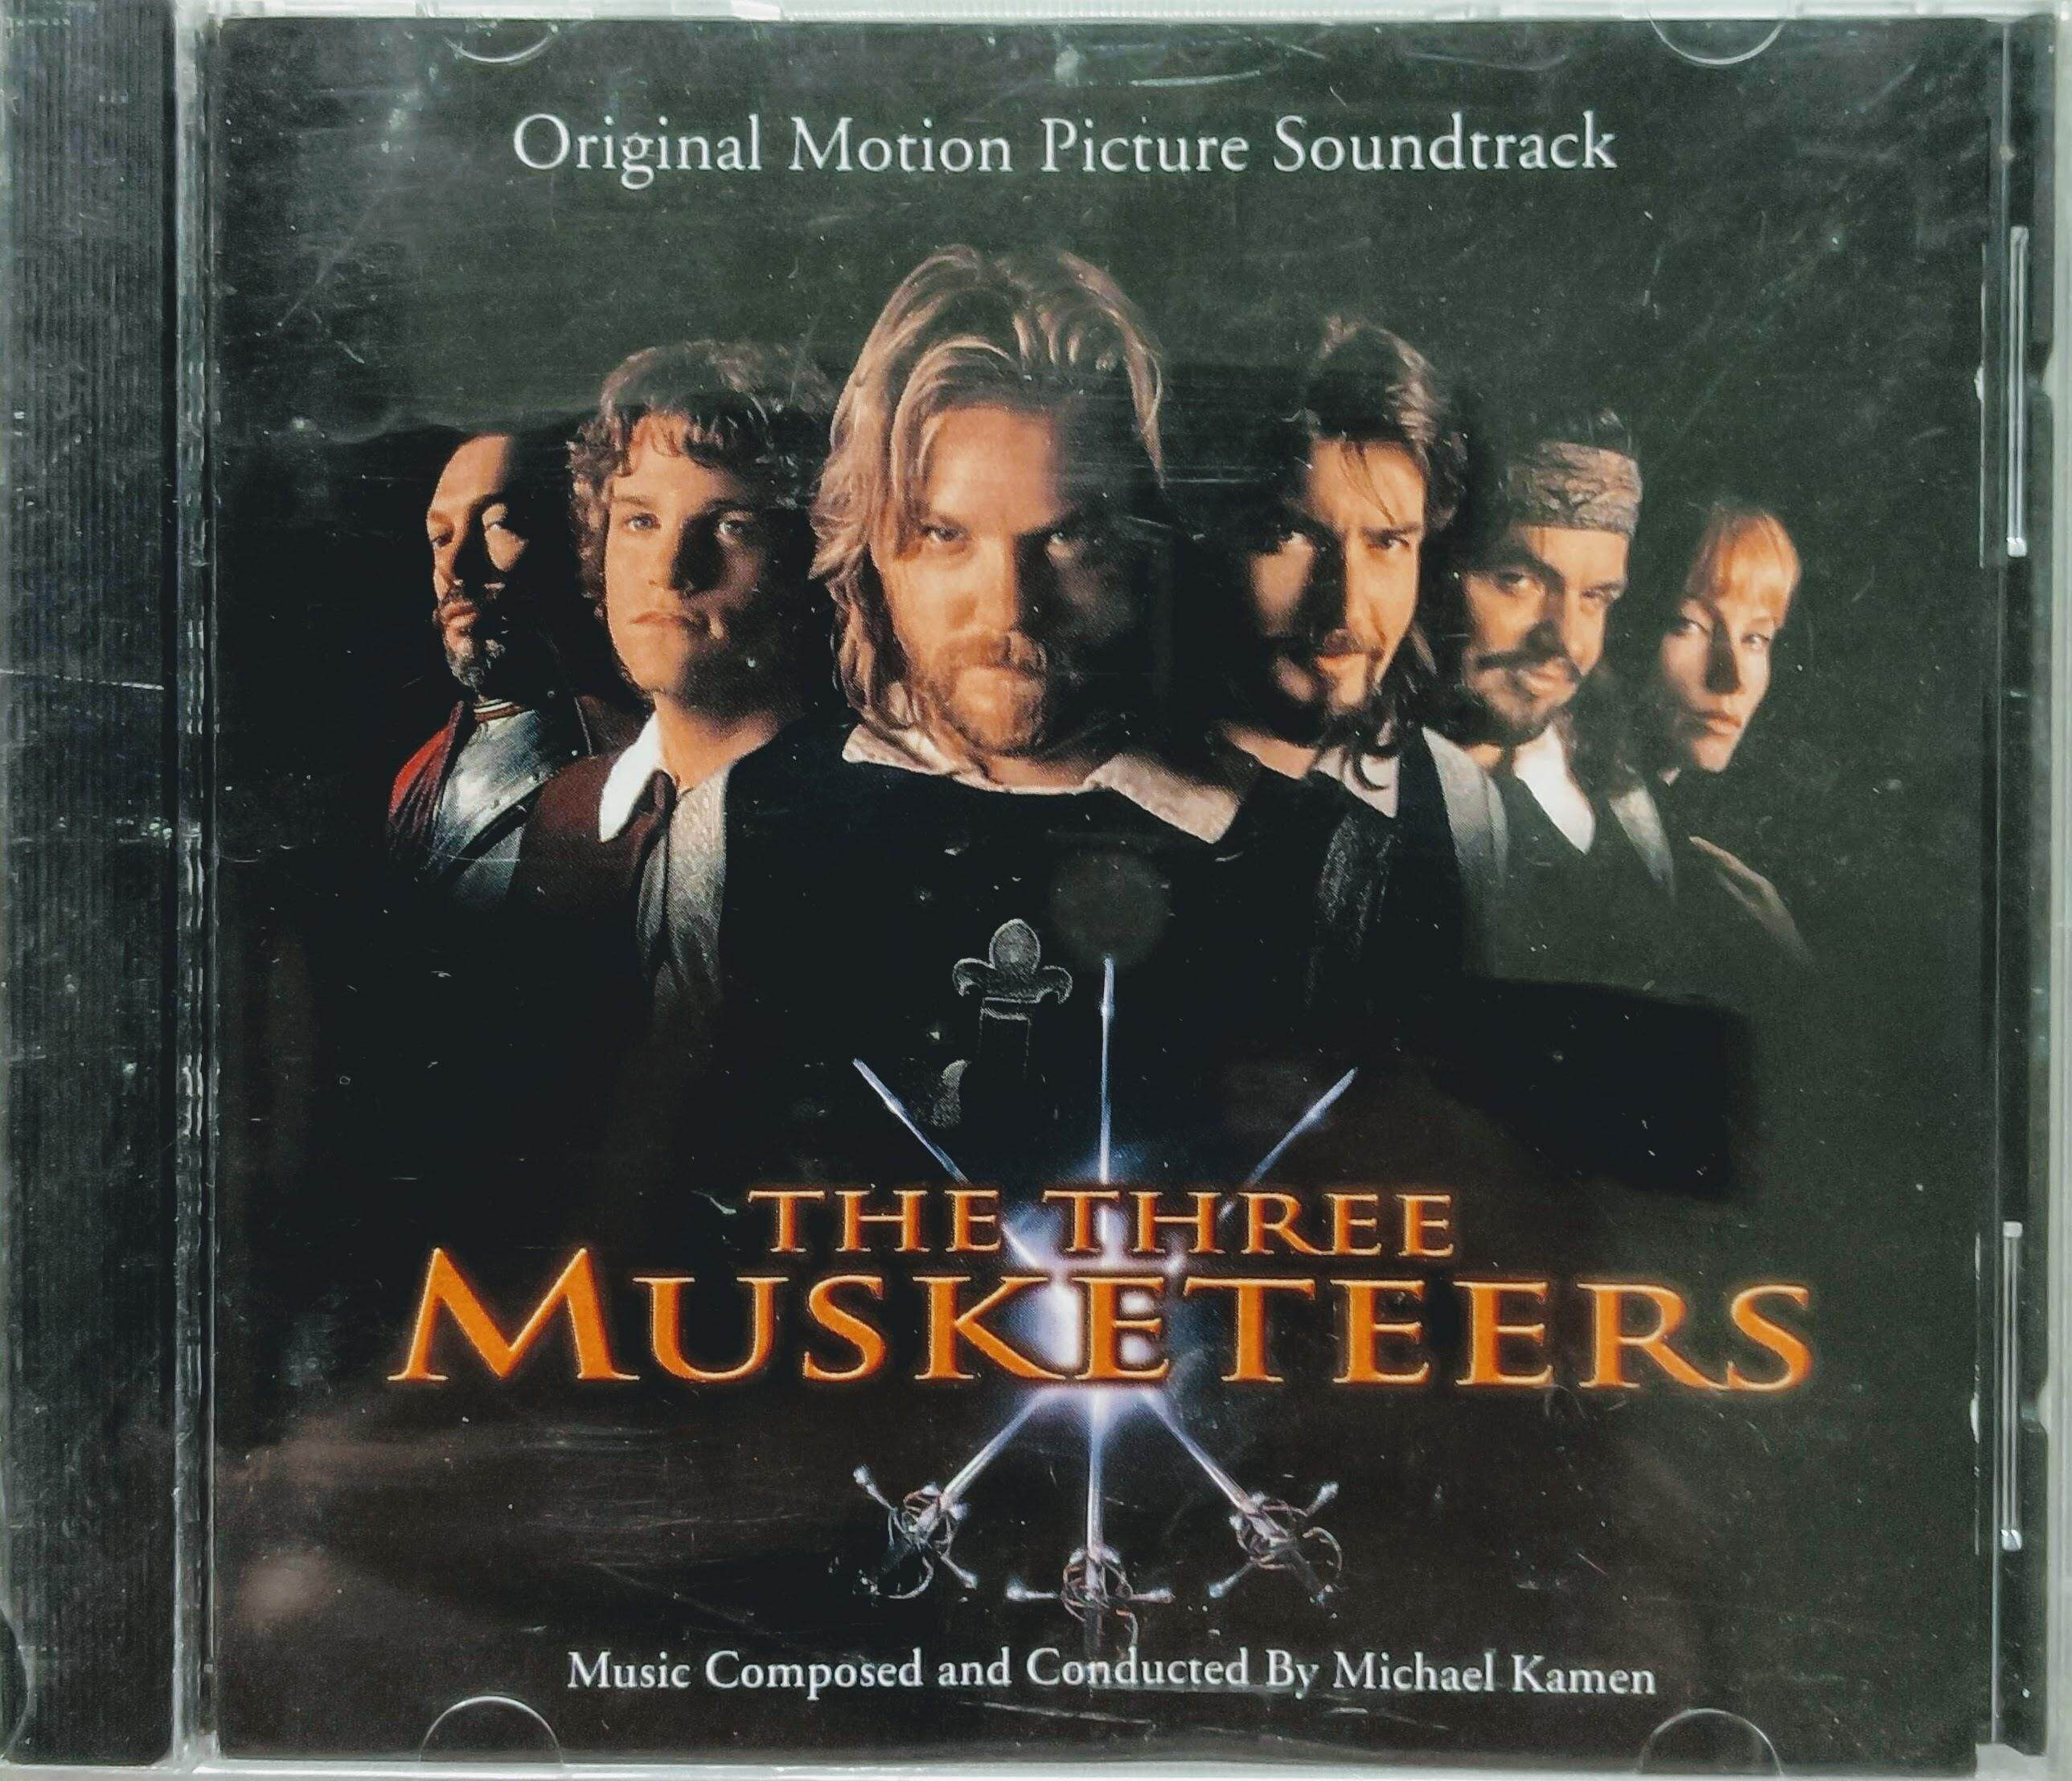 Cd Various Artists - The Three Musketeers (the Original Soundtrack From Motion Picture) By Yin Yang Shop.